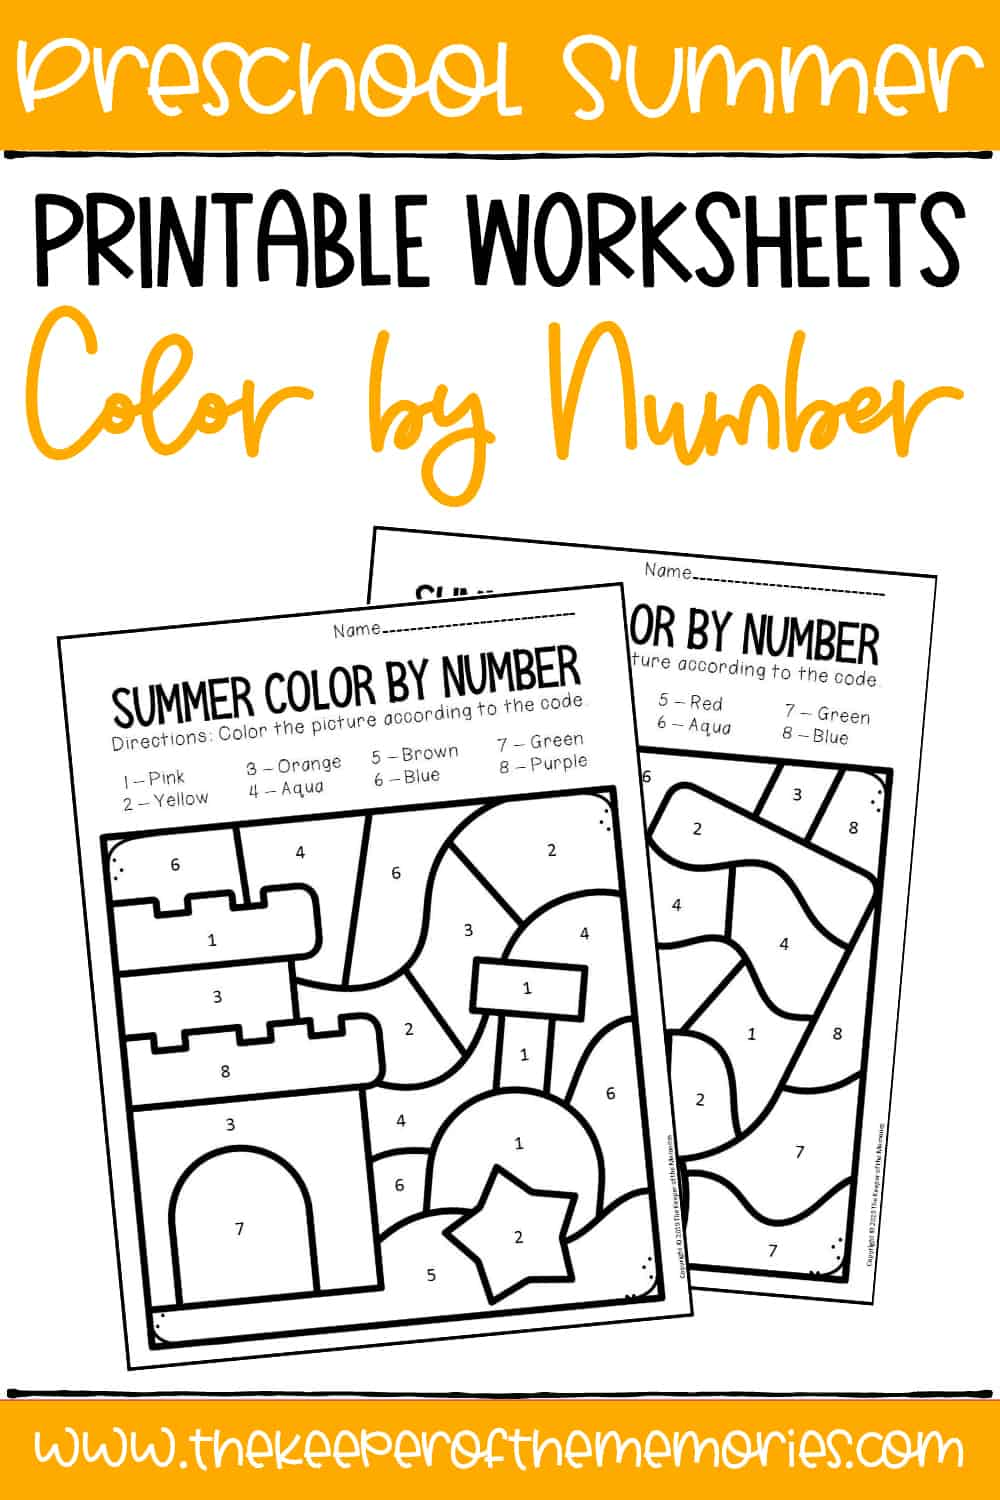 Color by Number Summer Preschool Worksheets - The Keeper ...